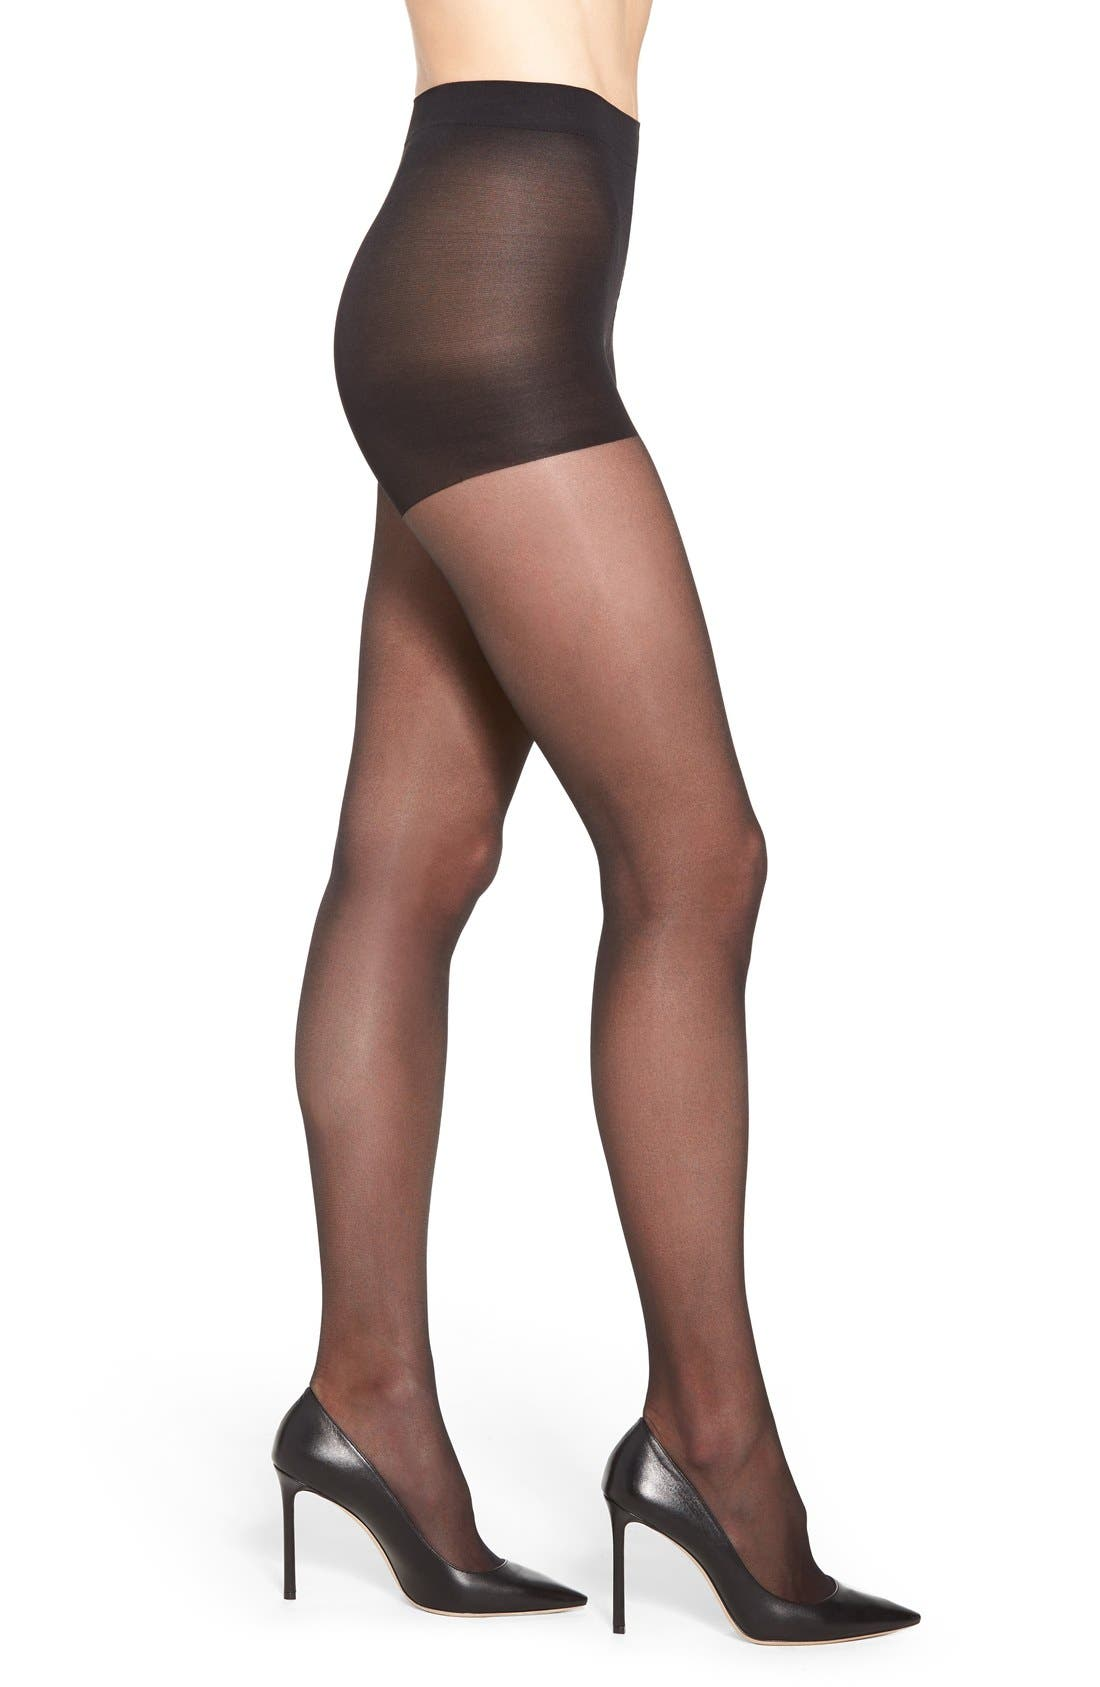 Nordstrom Light Support Pantyhose (Any 3 for $36)